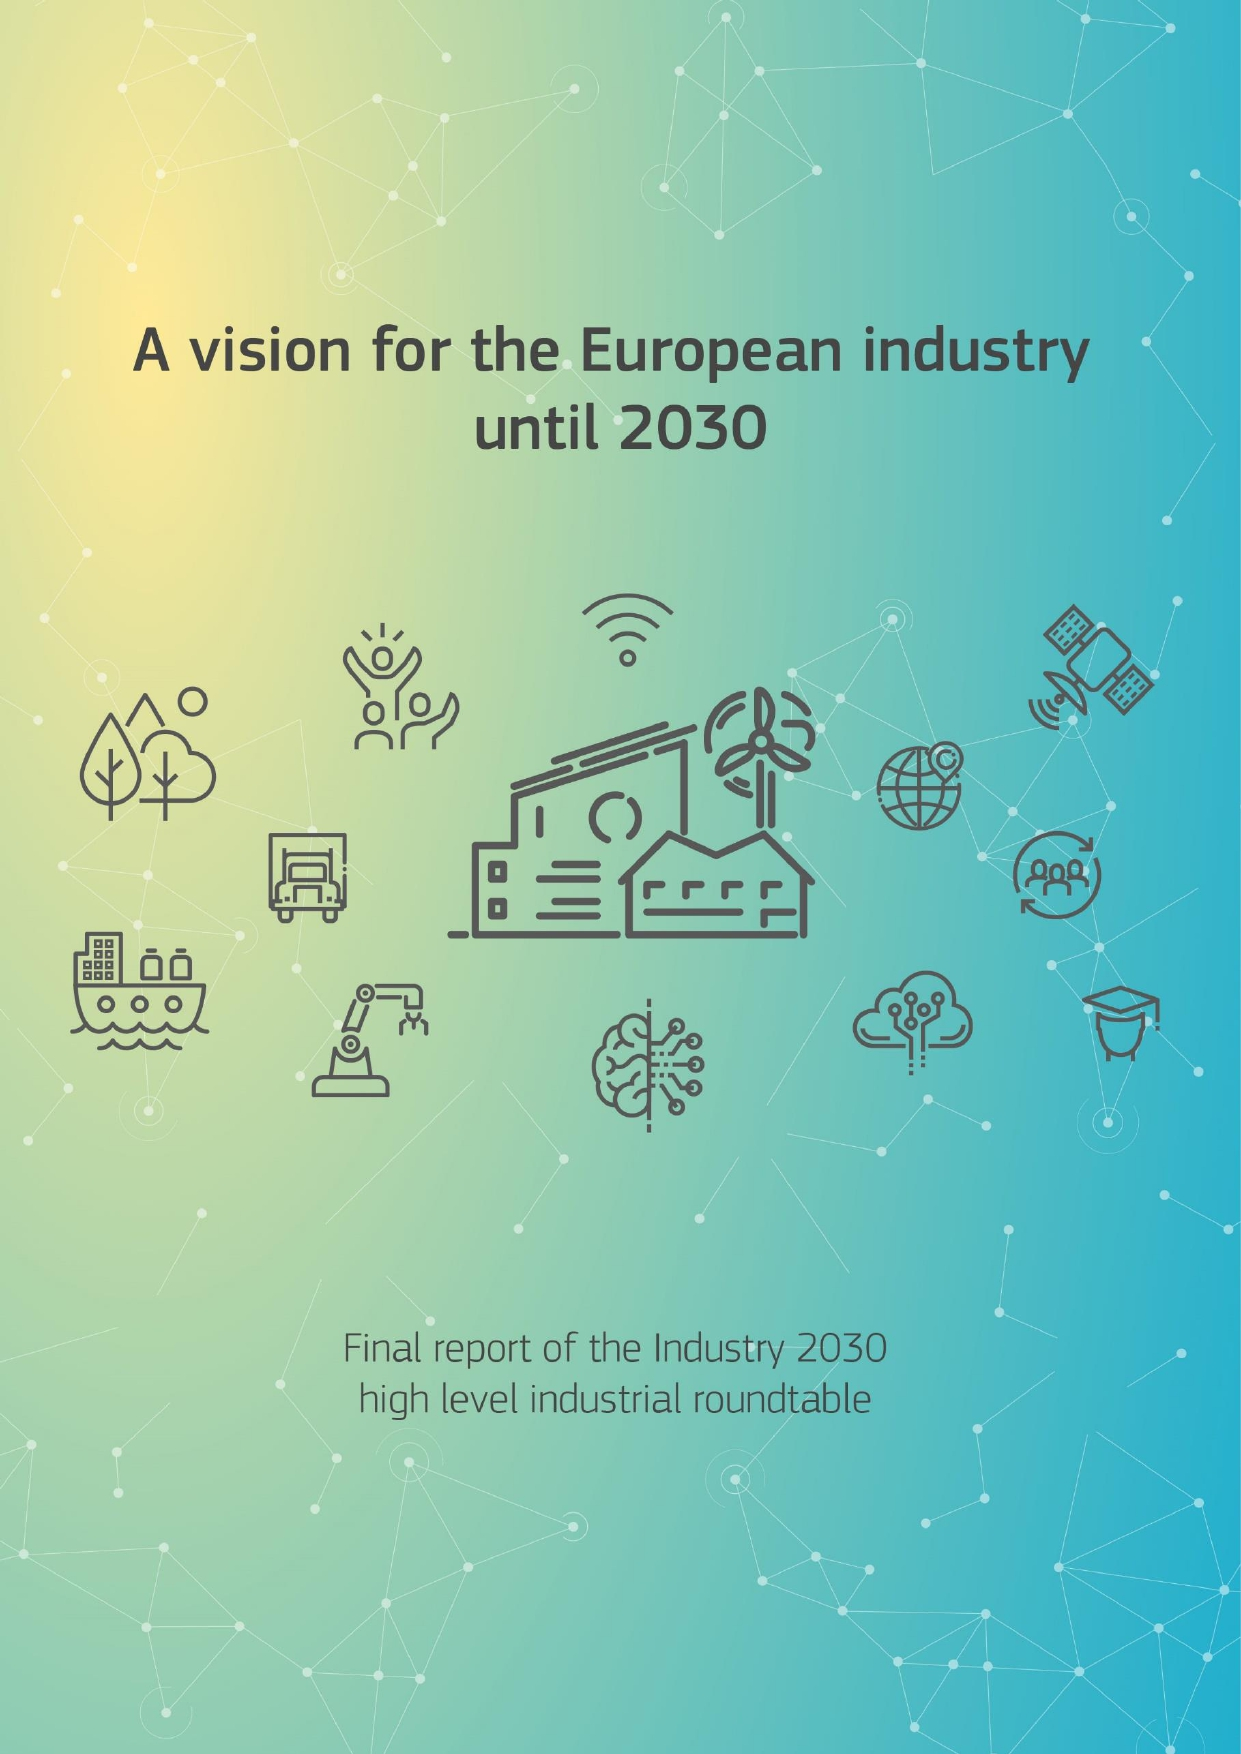 A vision for the European industry until 2030